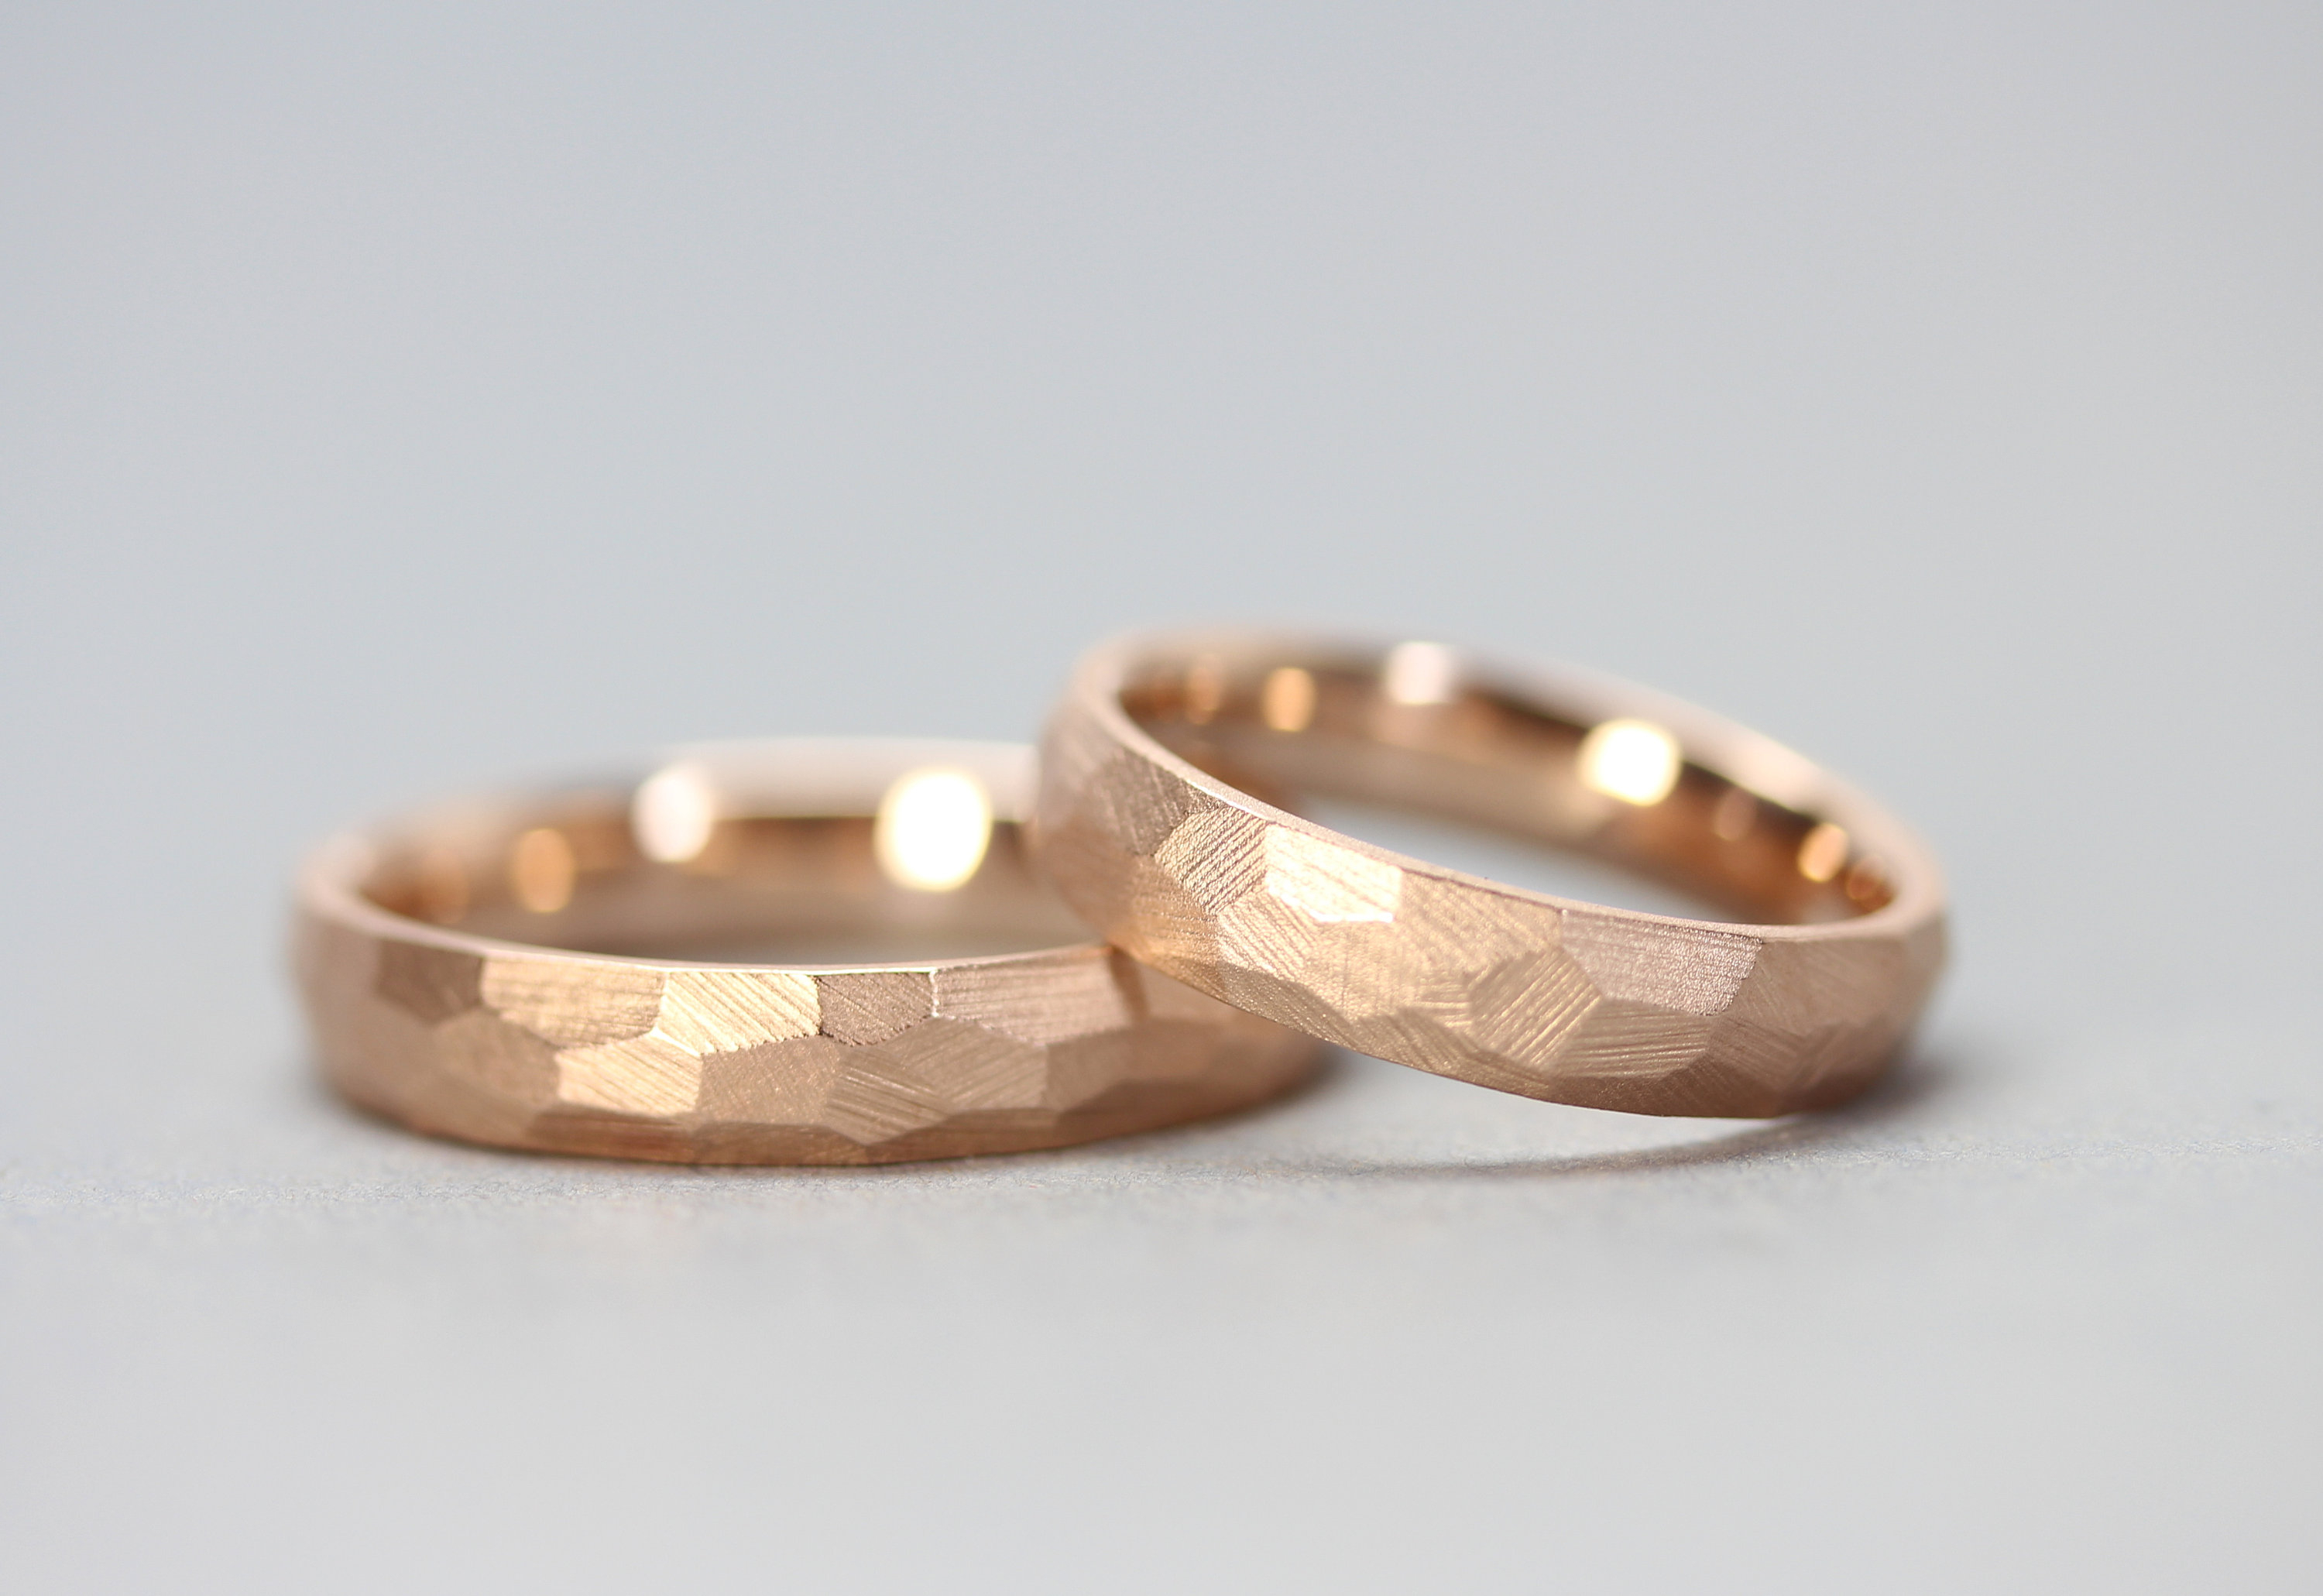 Multifaceted Wedding Rings In 585/red Gold Pertaining To Current Multifaceted Rings (View 19 of 25)